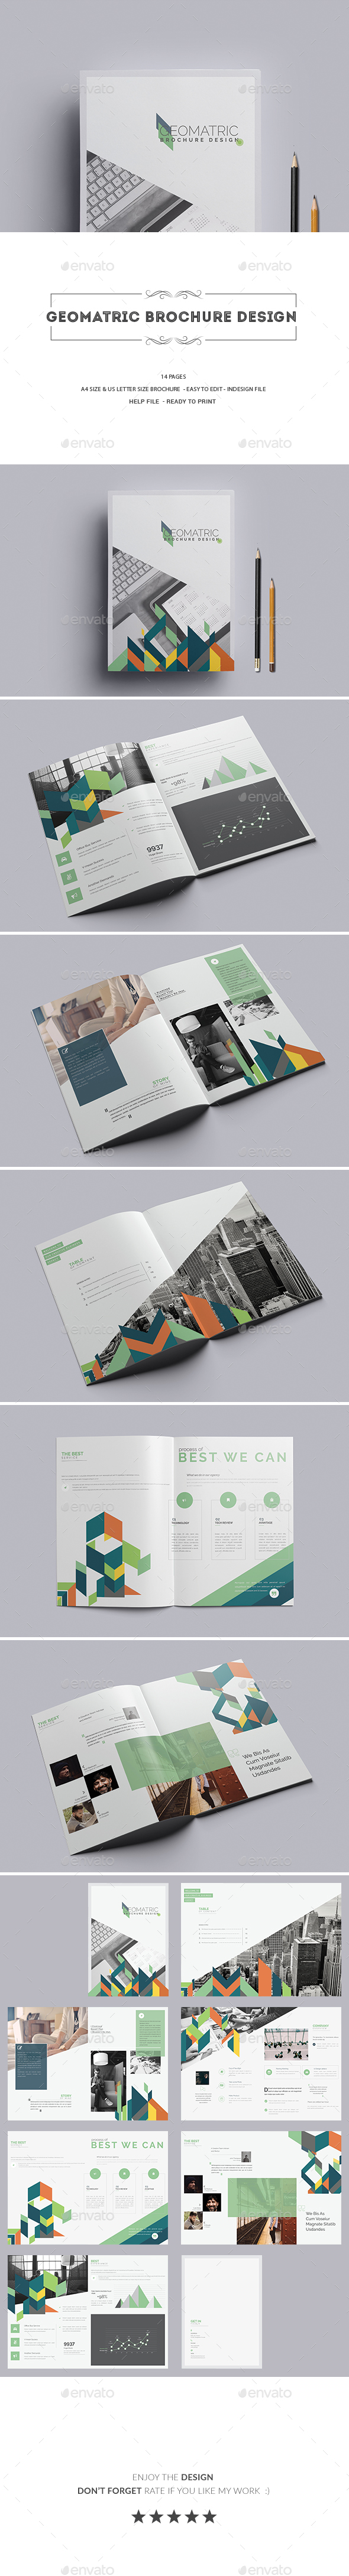 Geomatric Brochure Design - Corporate Brochures